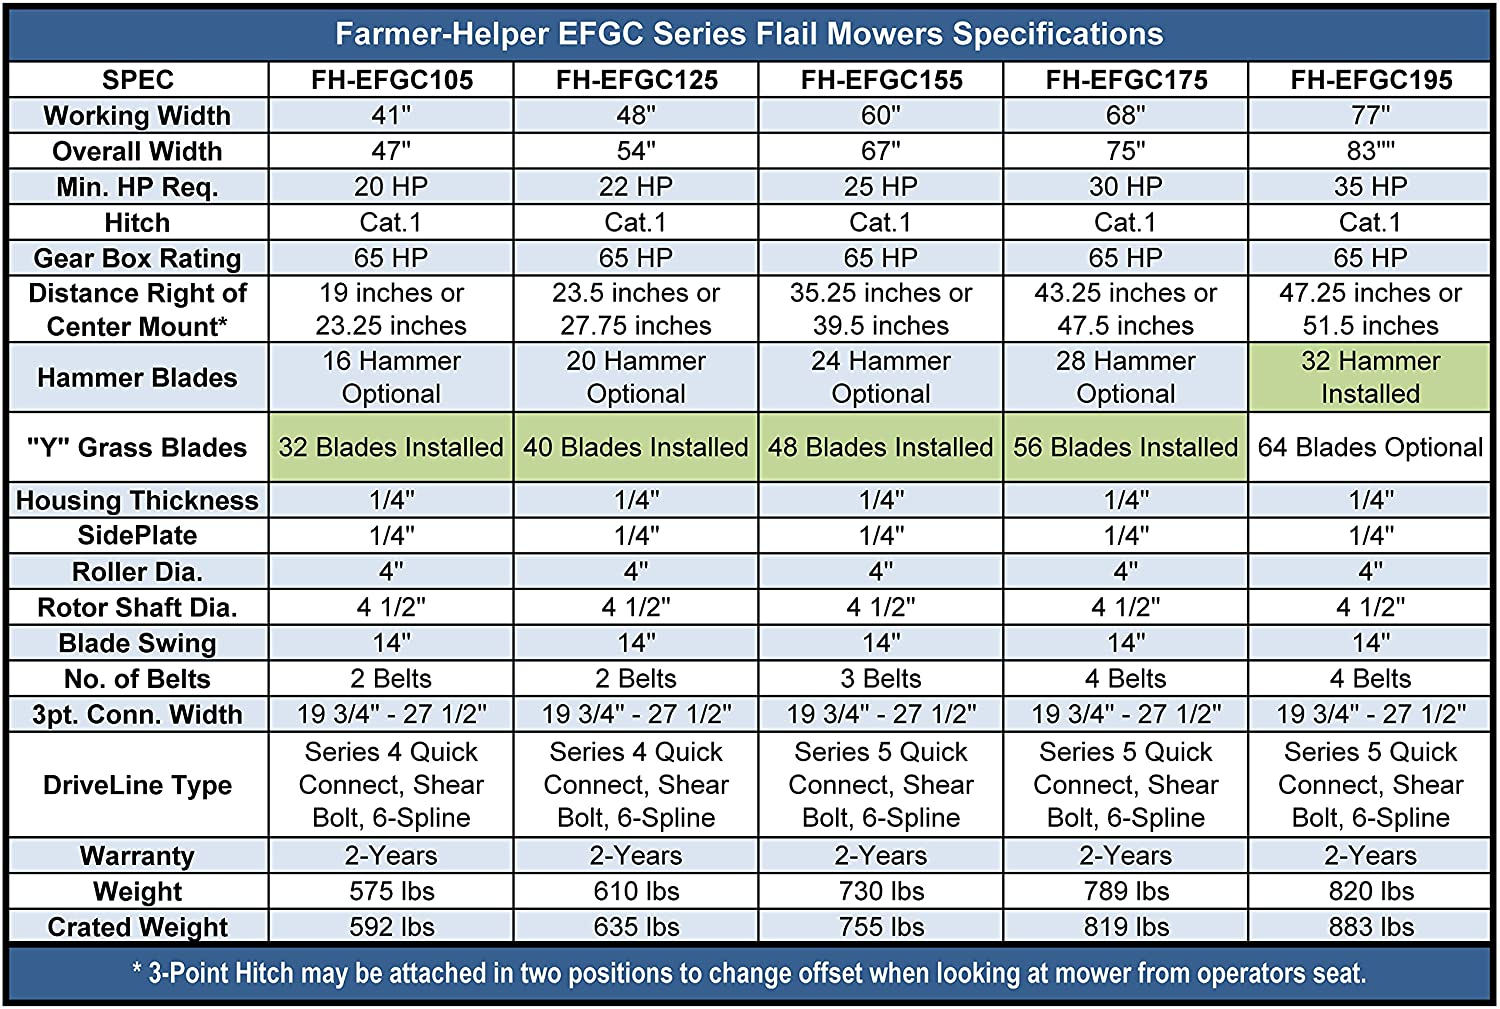 FH-EFGC125 Not a standalone Unit. Requires a Tractor Farmer Helper 48 Flail Mower Cat.I 3pt 22+HP Rating